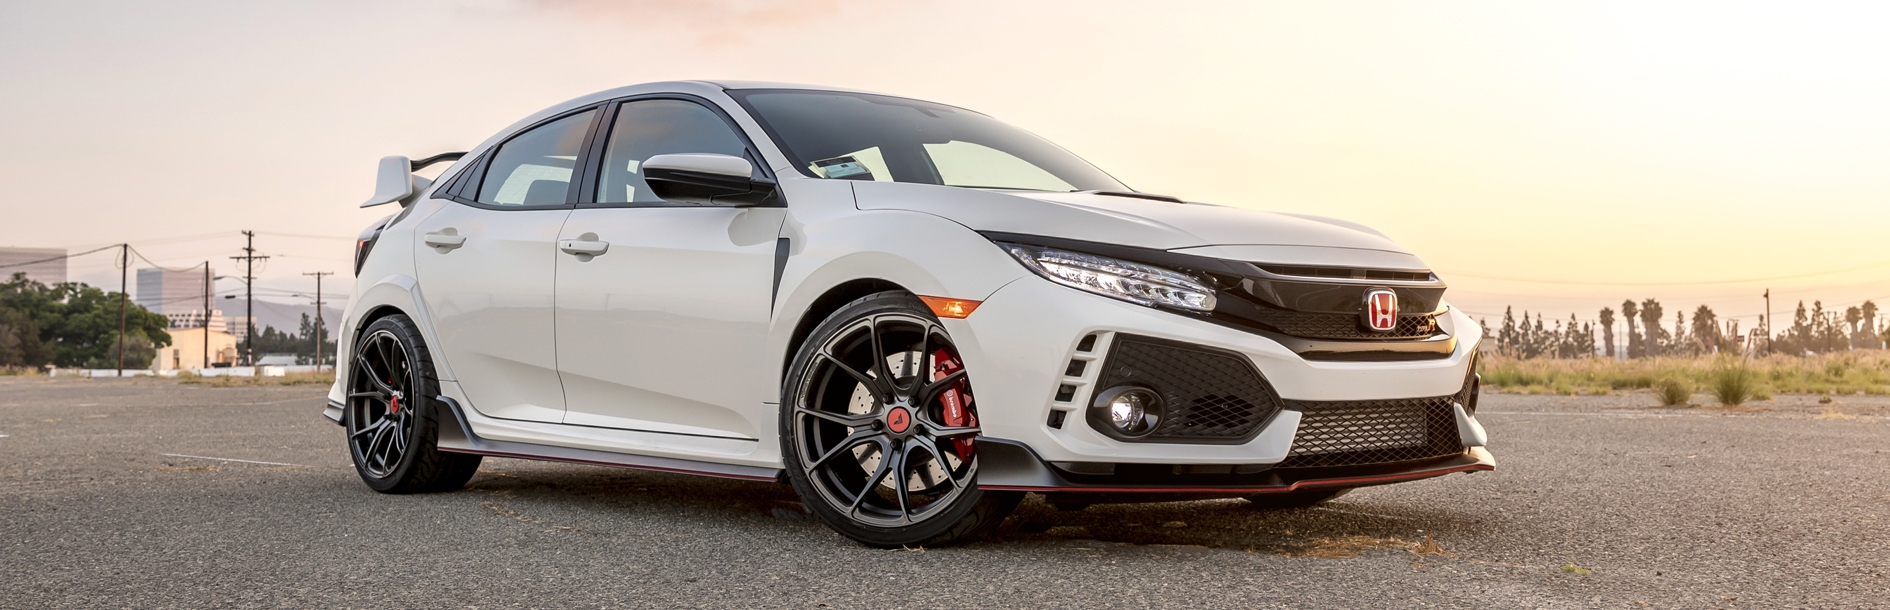 Honda Civic Type R Alloy Wheels Amp Performance Tyres Buy